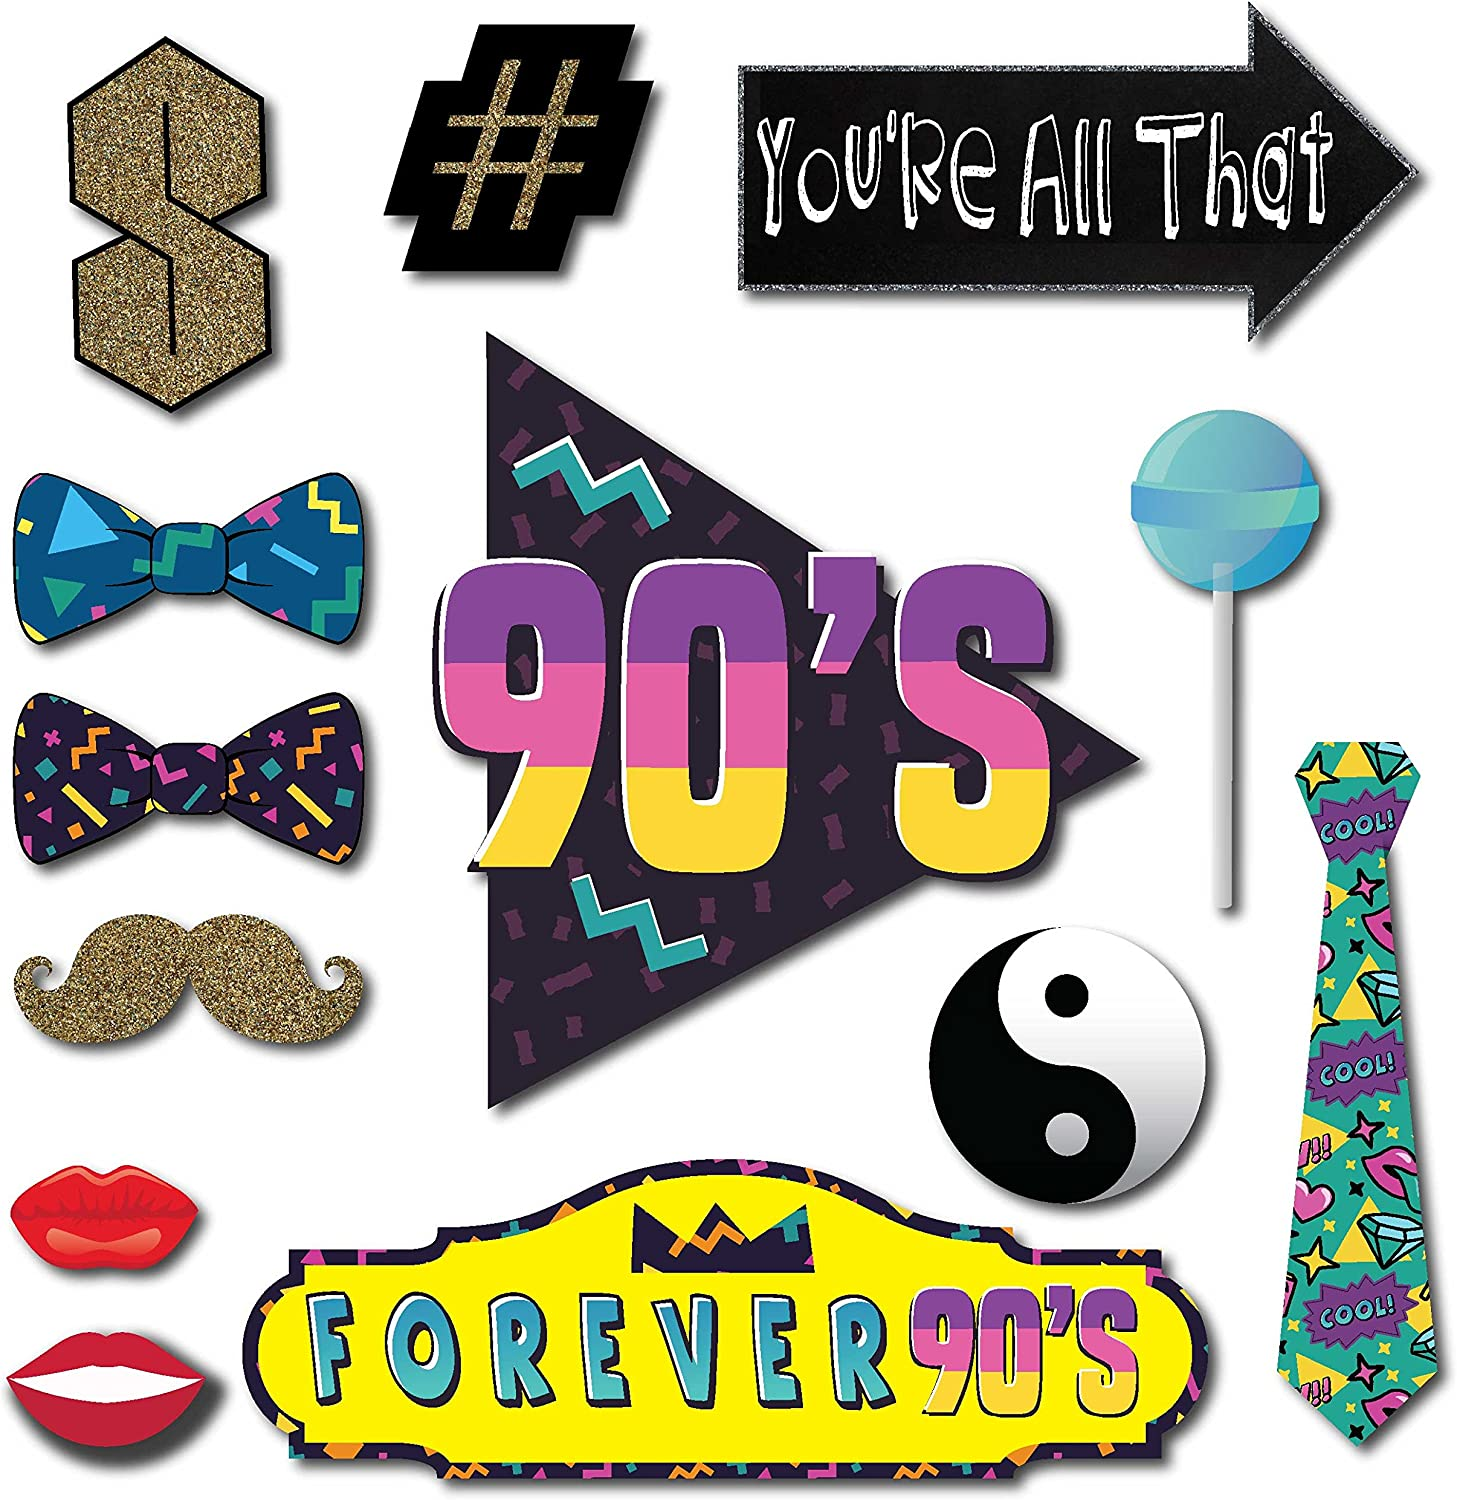 Amazon Com 90s Throwback 1990s Party Theme Photo Booth Props 41 Pieces With Wooden Sticks And Strike A Pose Sign By Outside The Booth Home Kitchen